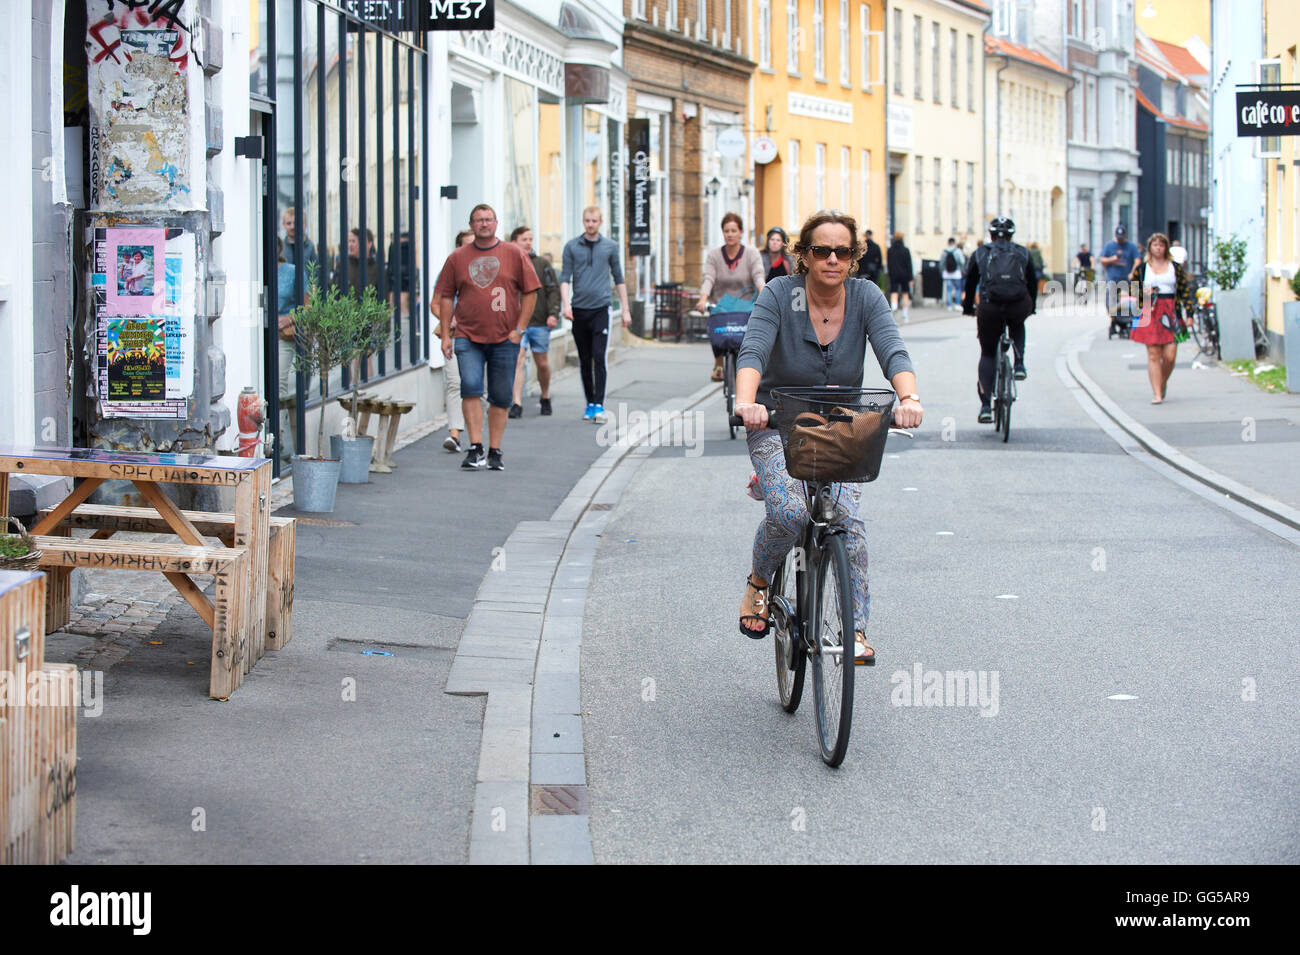 Bicyclist and pedestrians, Mejlgade, Aarhus - Stock Image